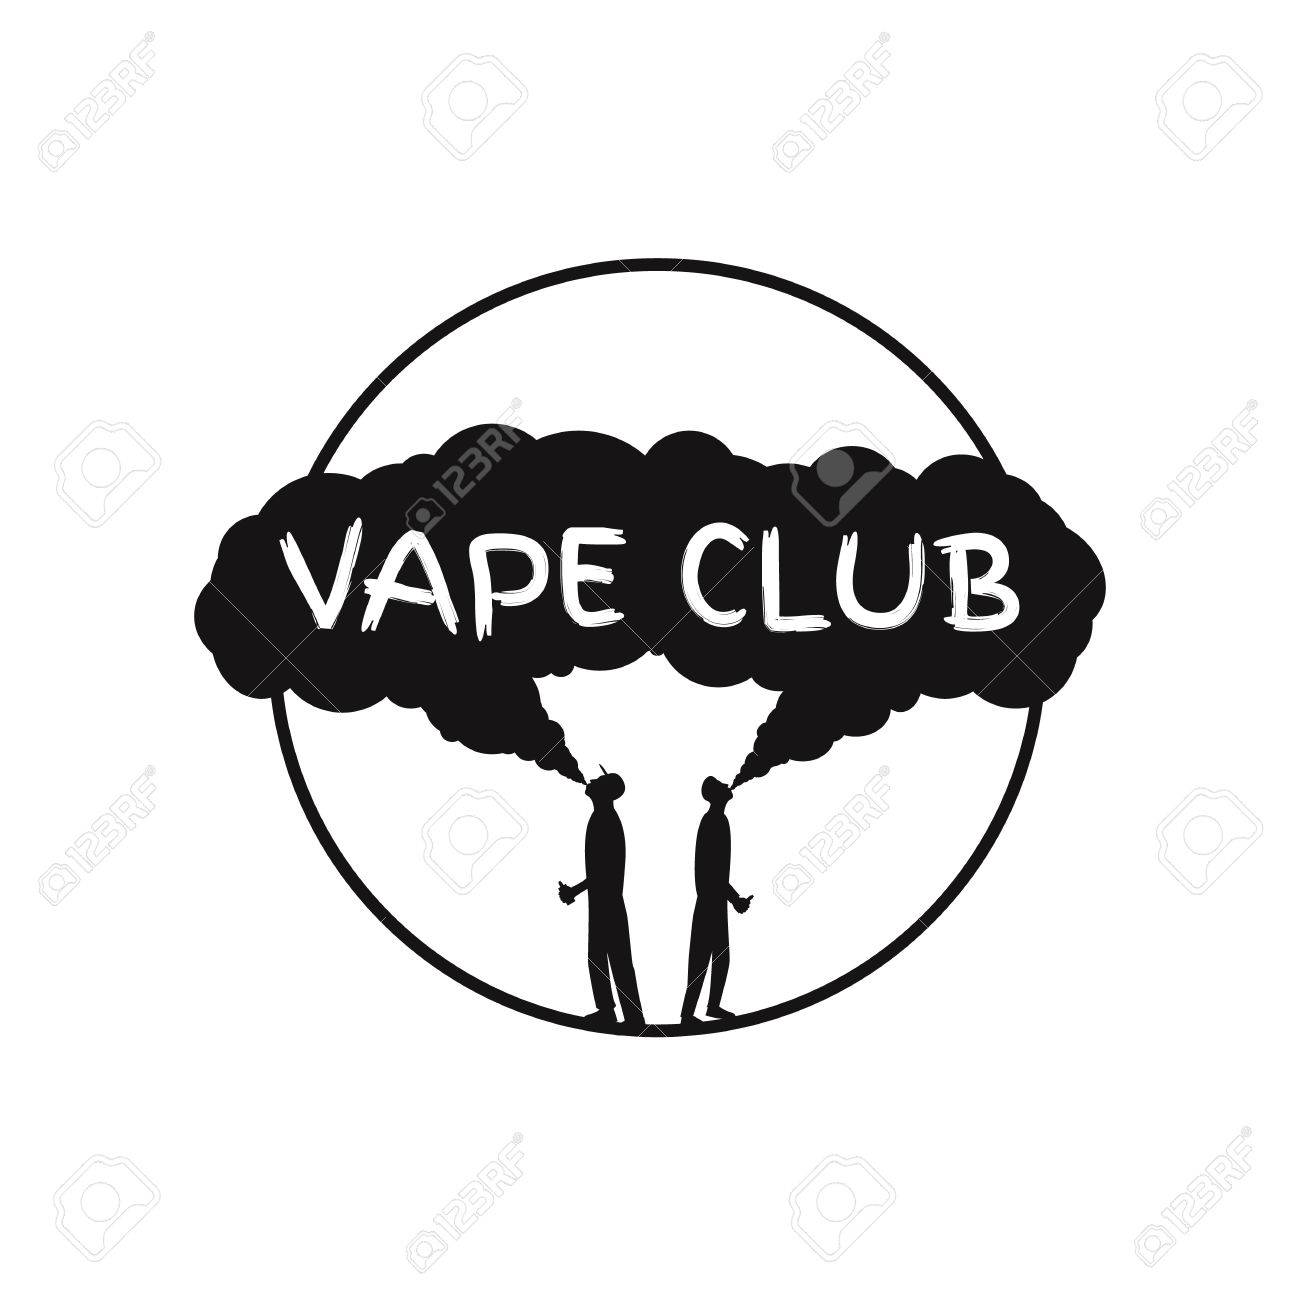 Vape club badge, logo or symbol design concept  Can be used for